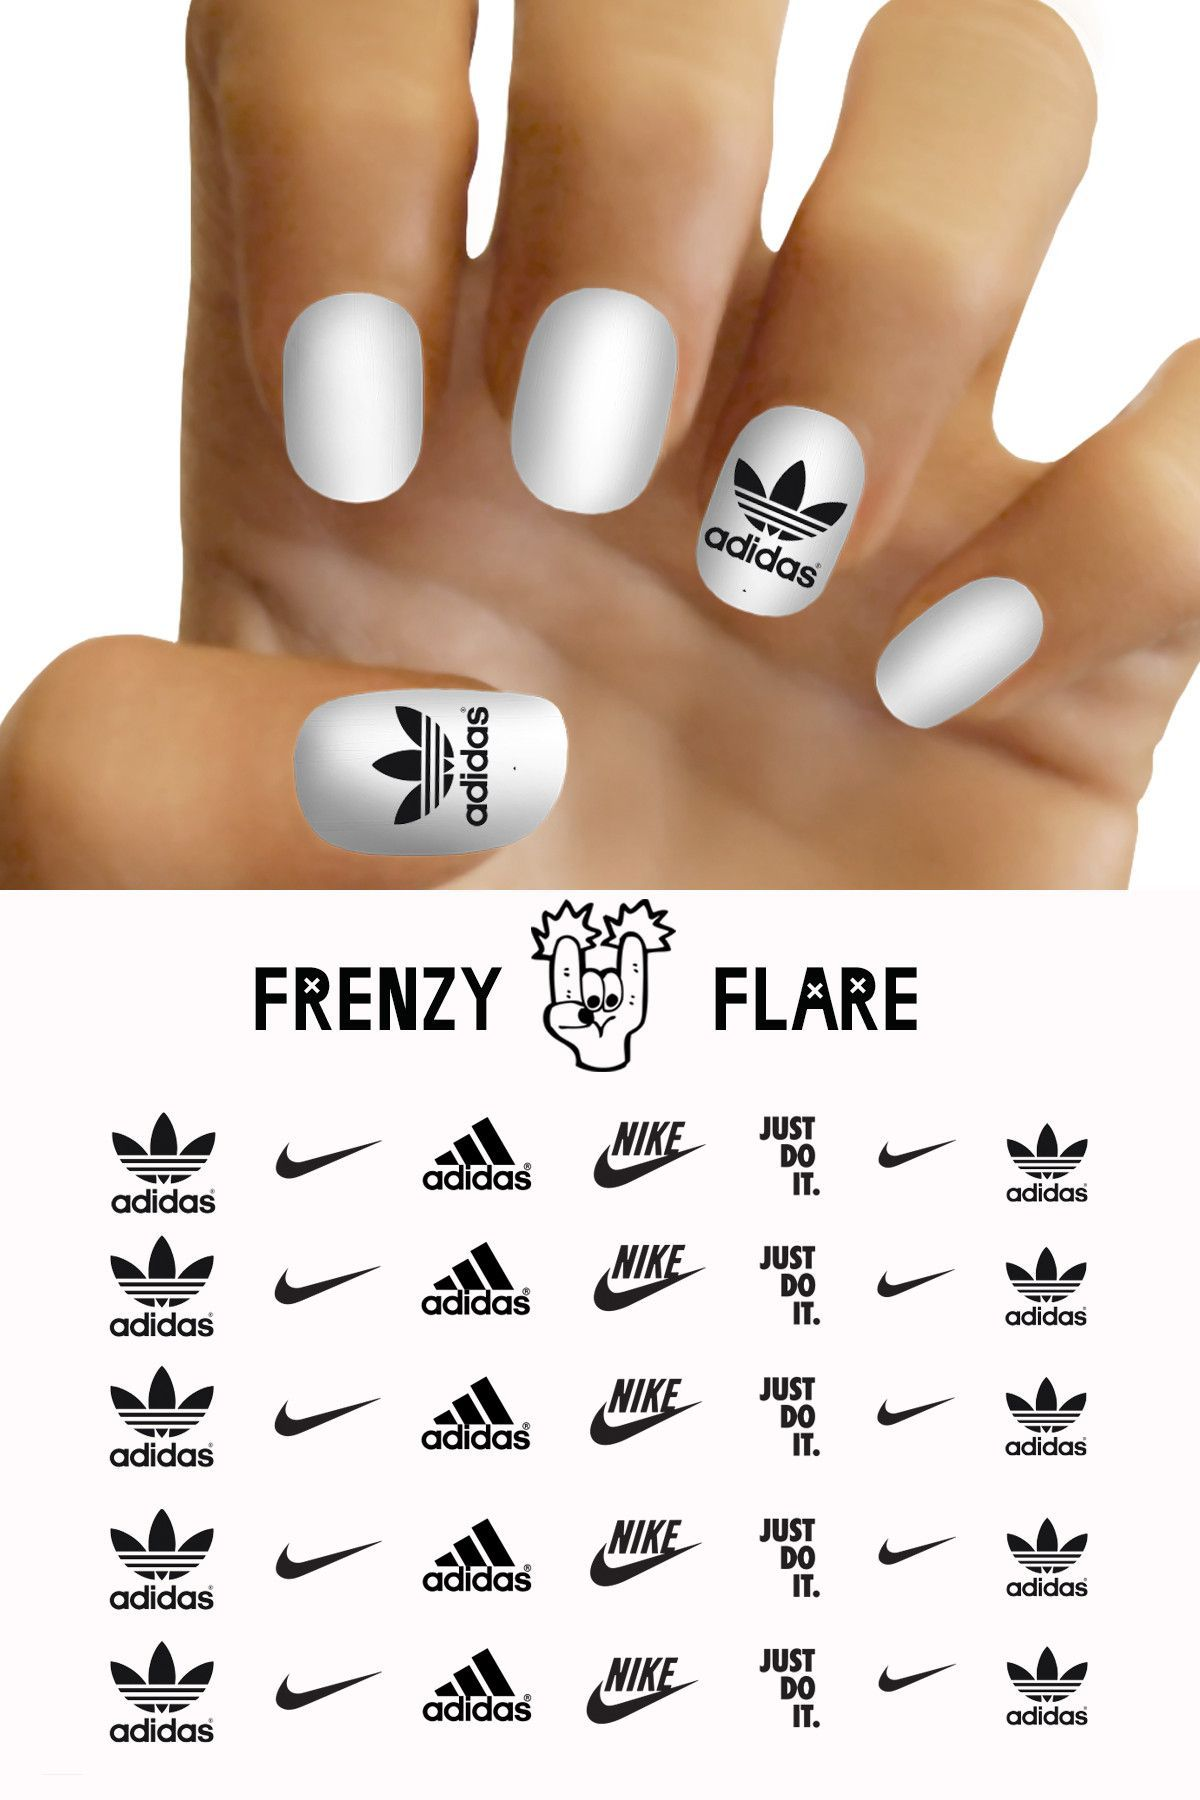 Adidas Nike Nail Decals | Nike nails, Nail decals and Adidas